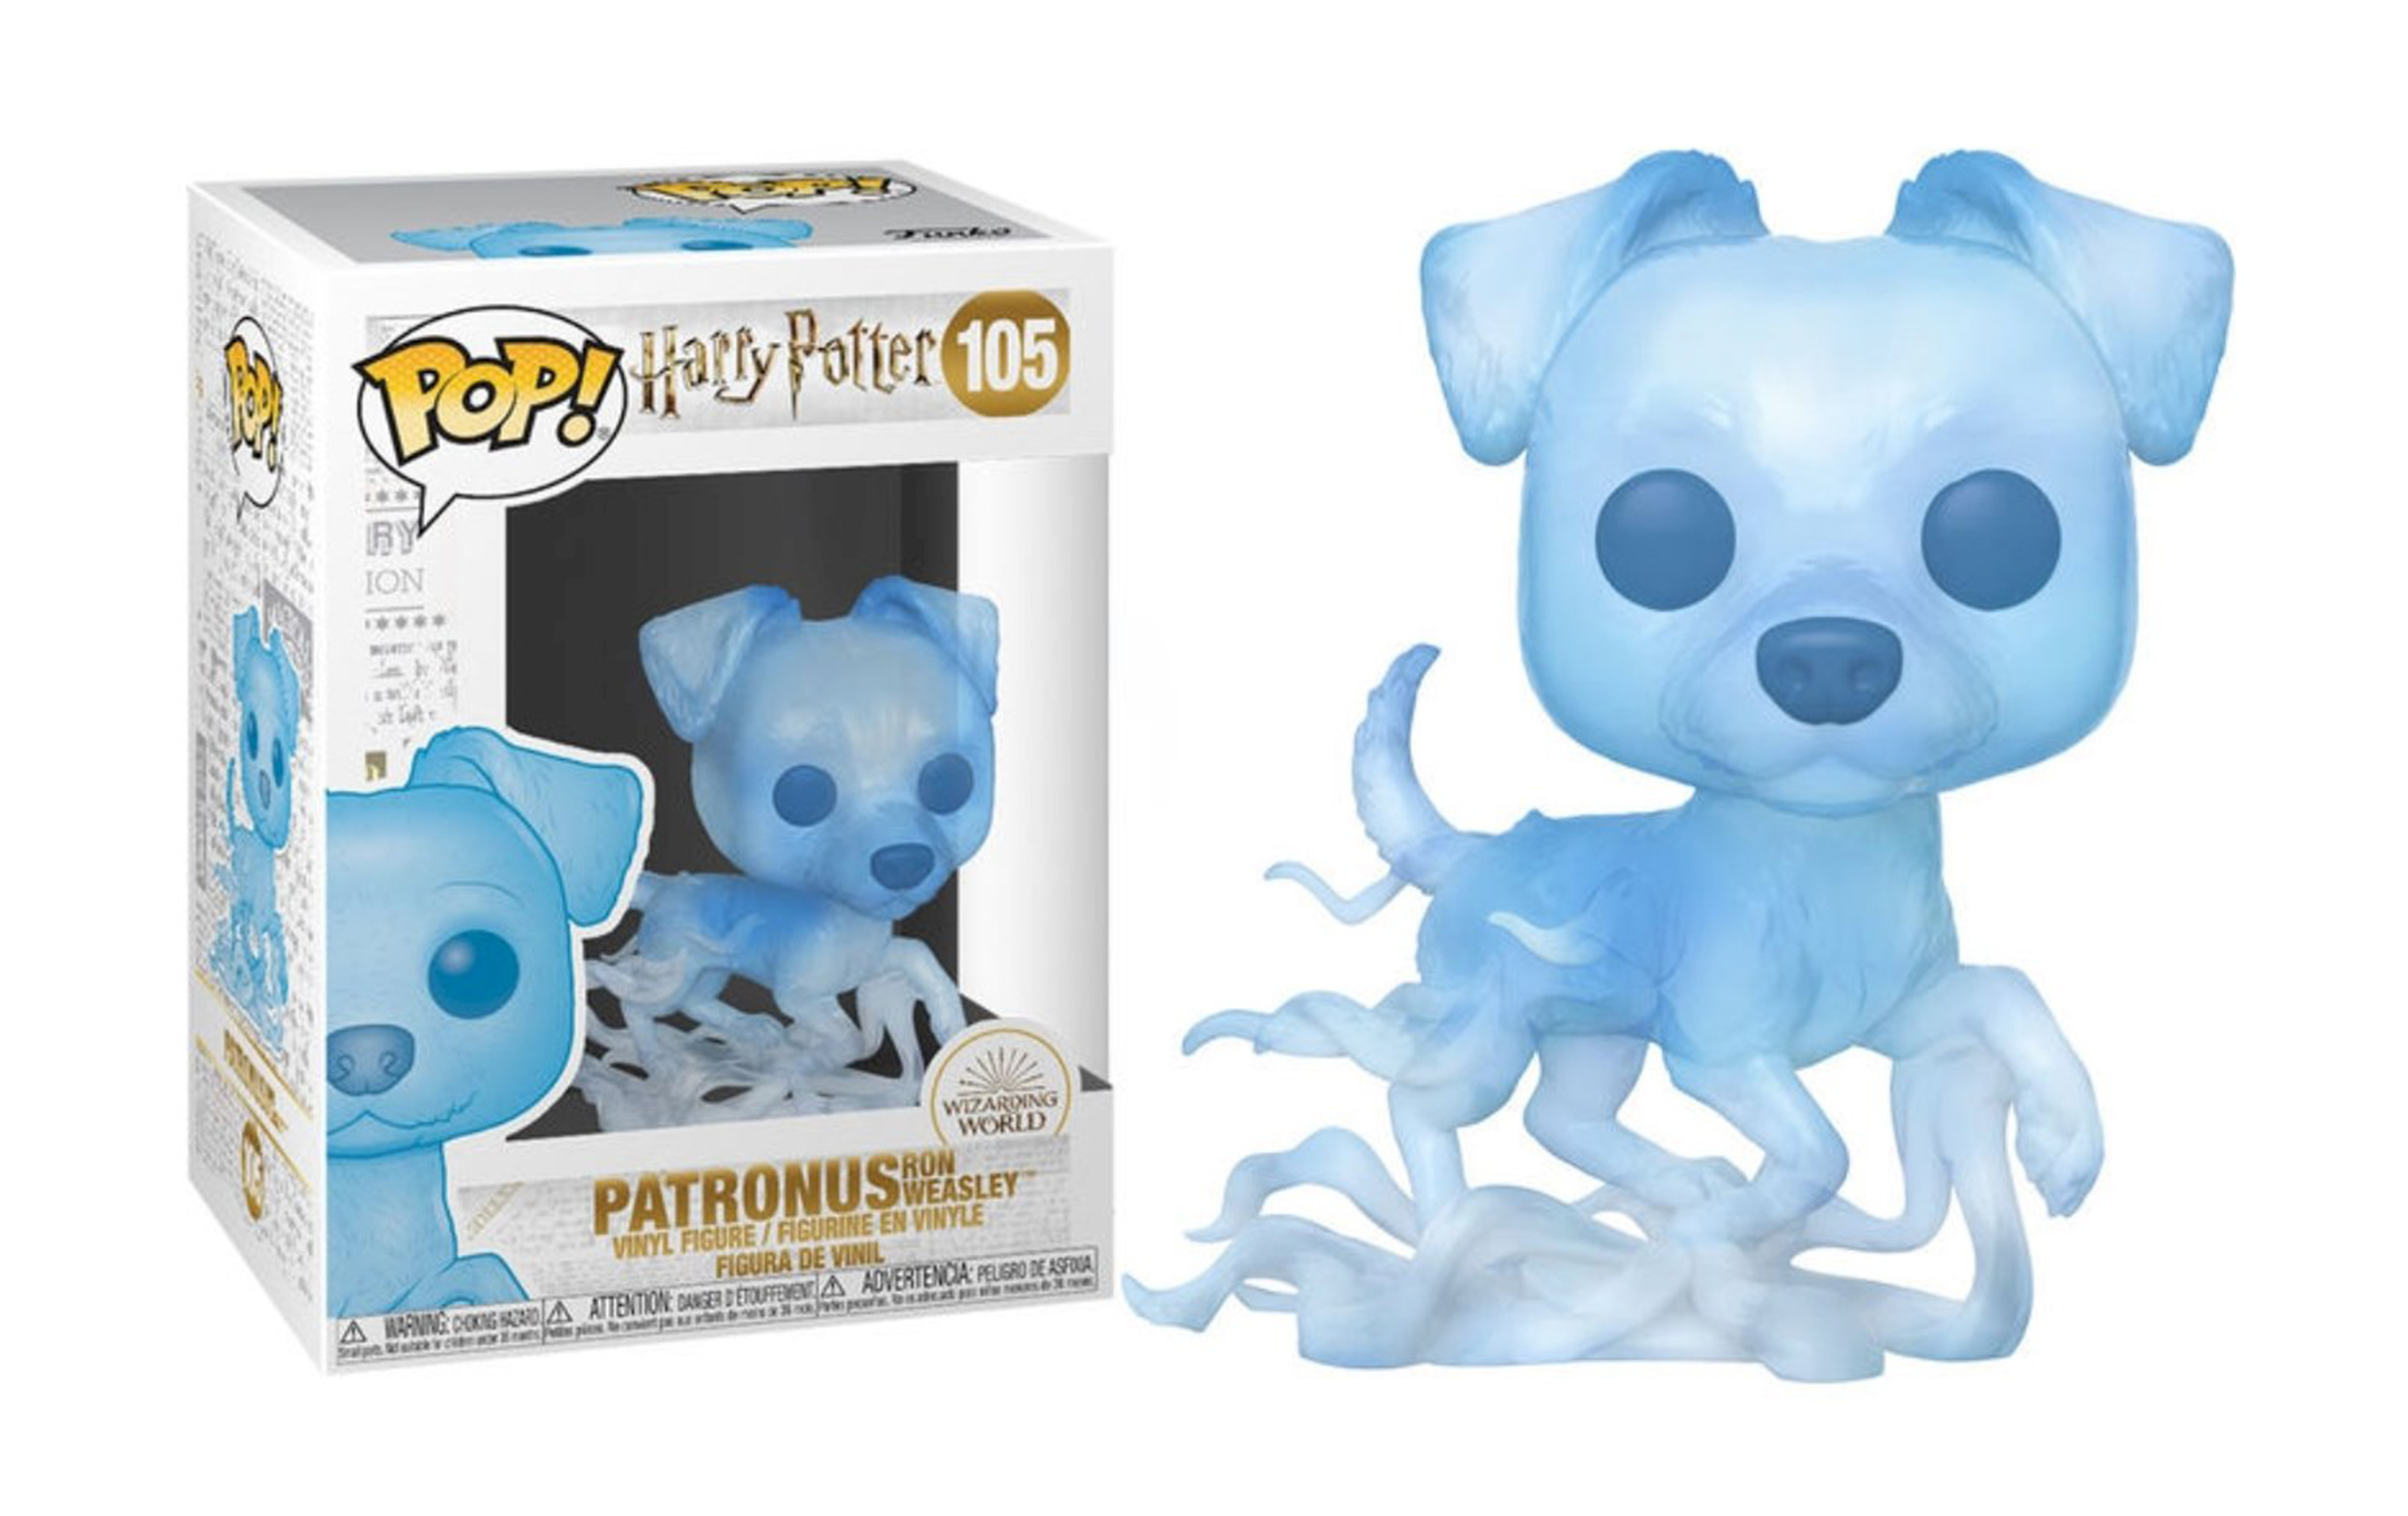 Harry Potter Ron Weasley Patronus 106 Funko POP Vinyl Figure